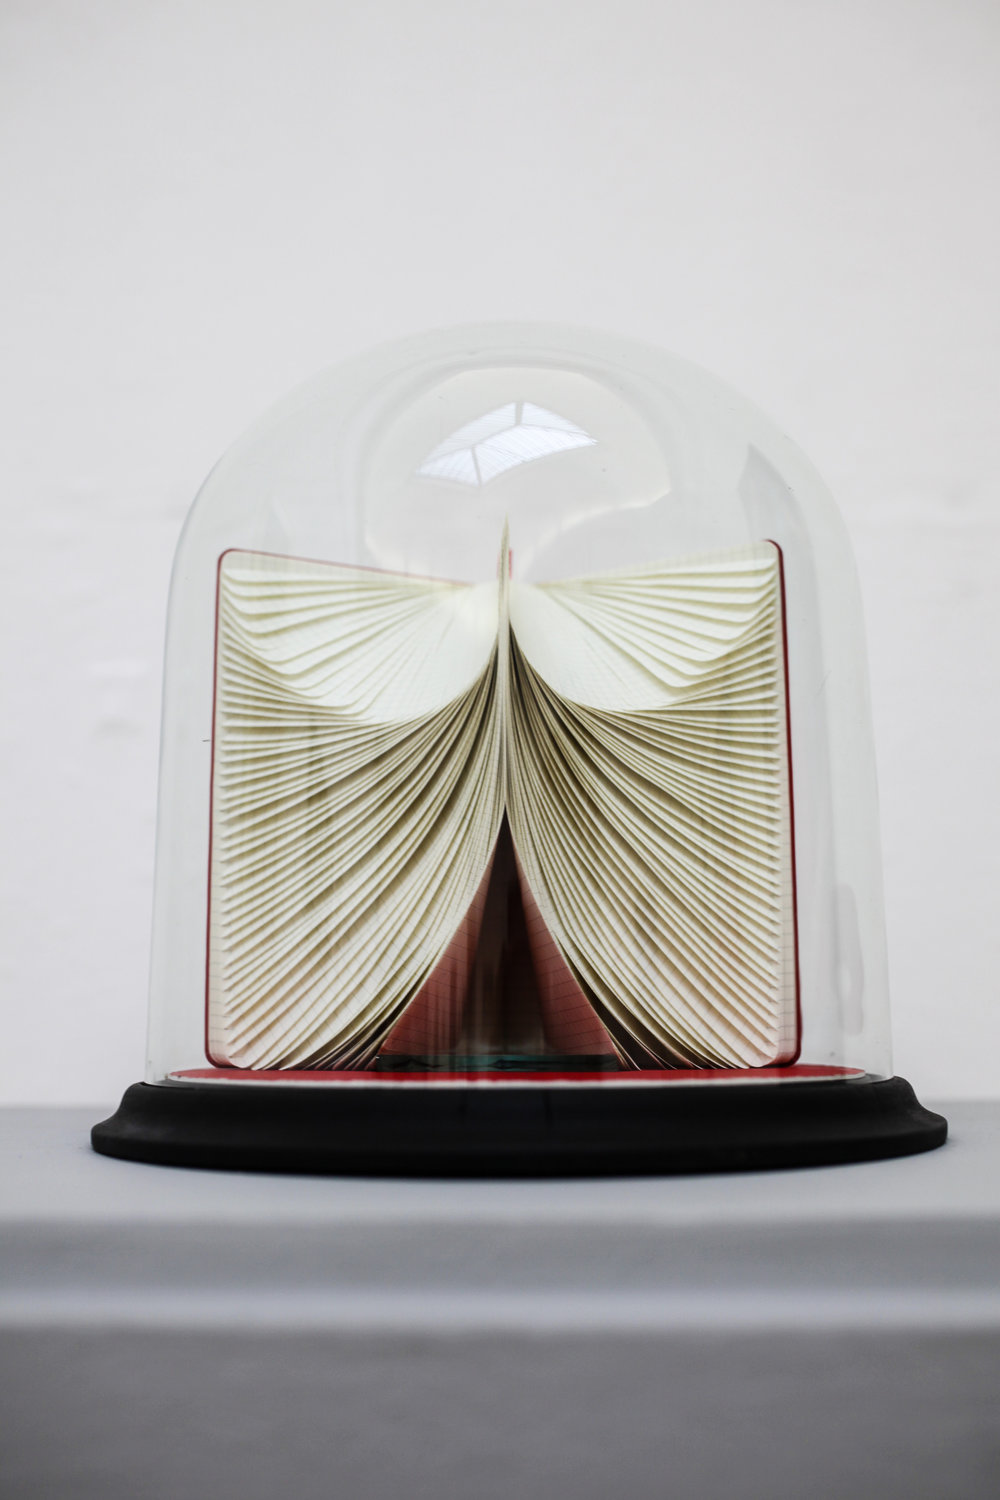 Toni Davey,  Pleasure Dome,  glass dome, A5 Moleskine sketch book, glass wedge